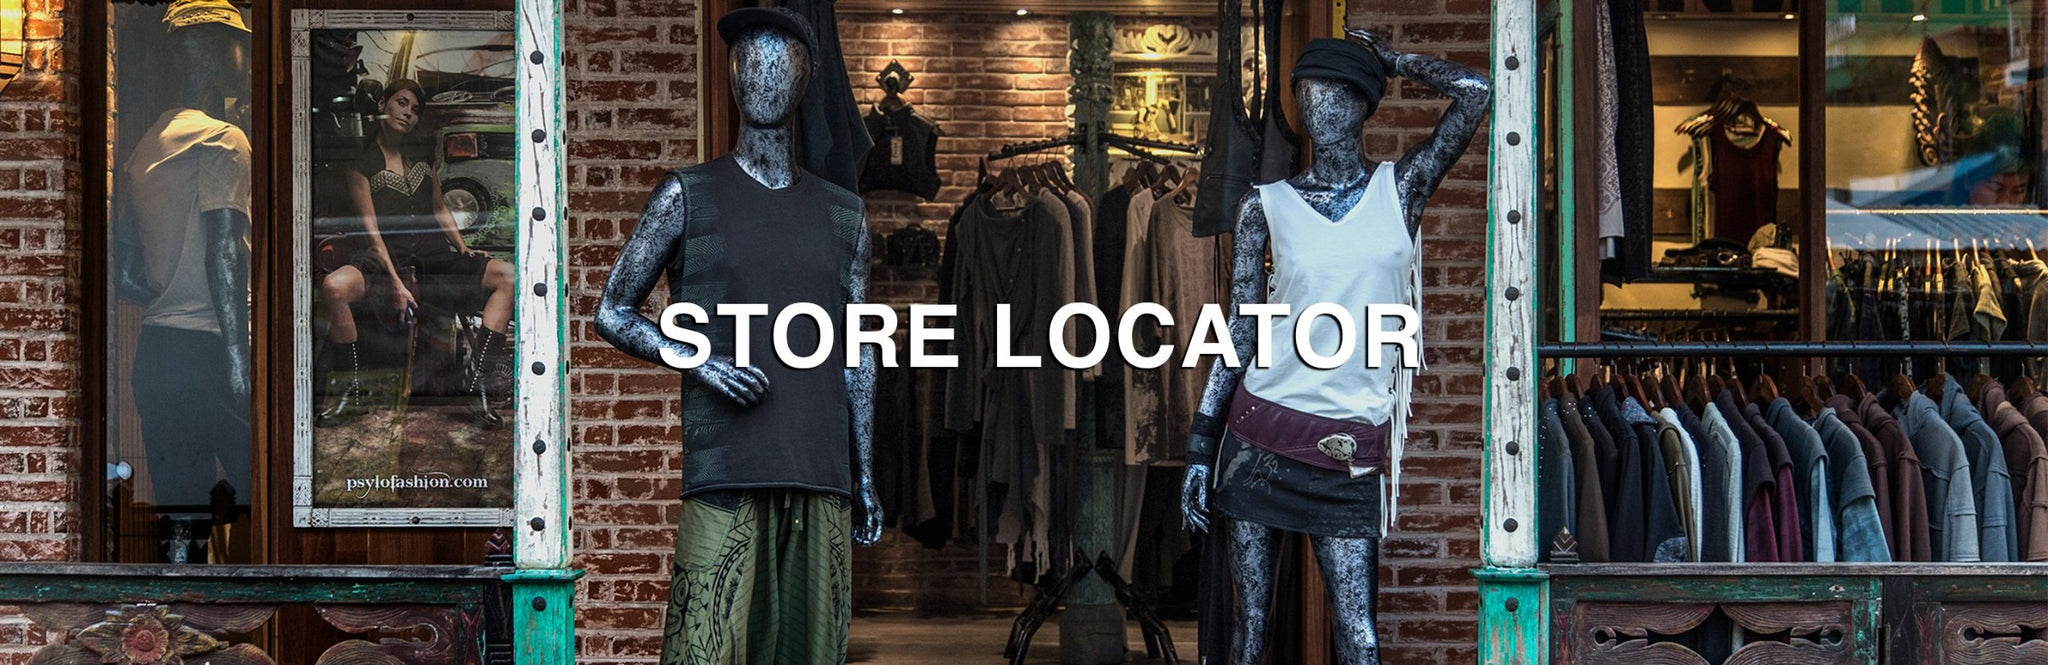 psylo fashion store locator